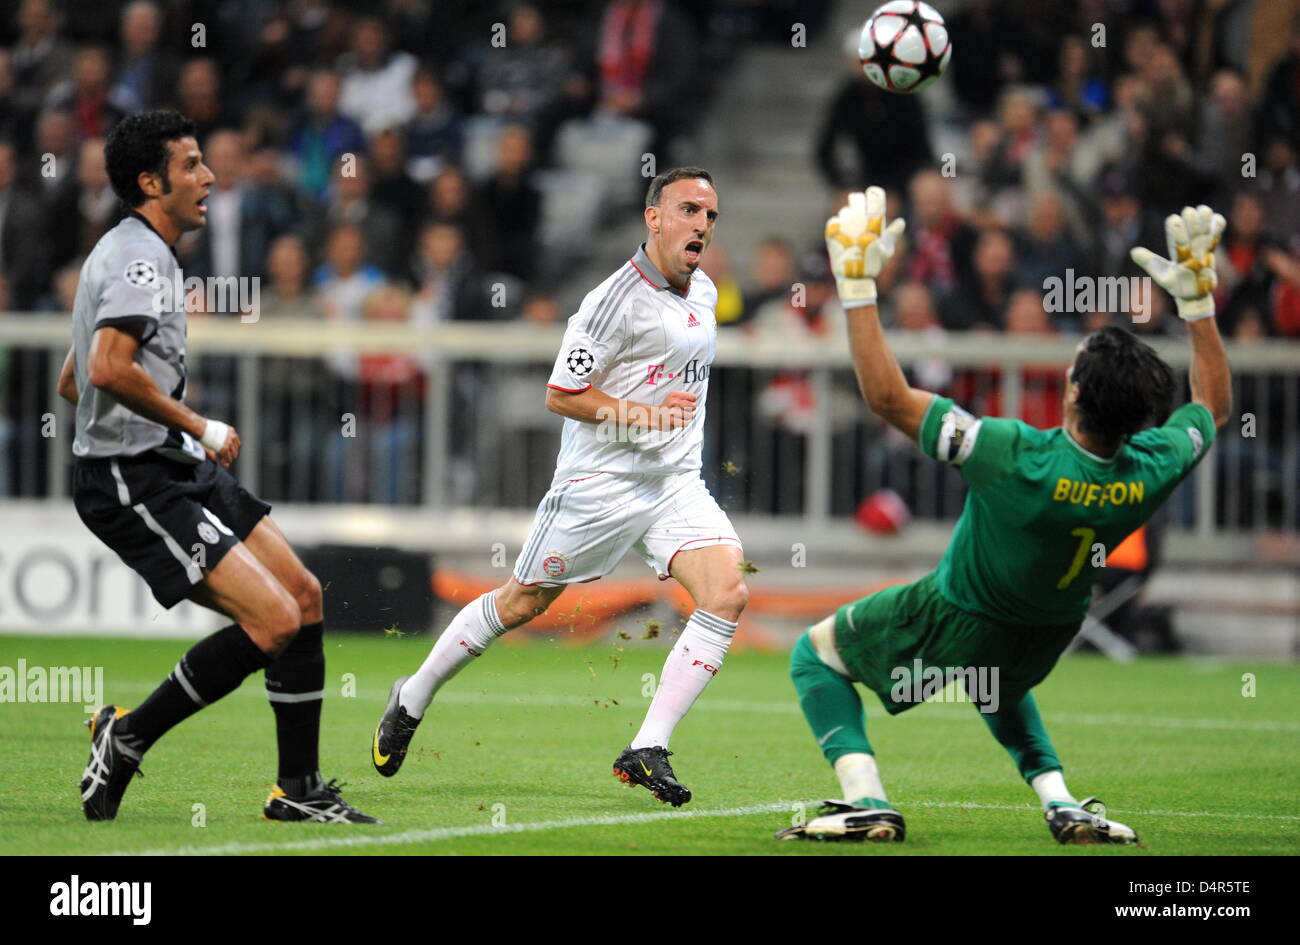 Buffon R High Resolution Stock Photography And Images Alamy